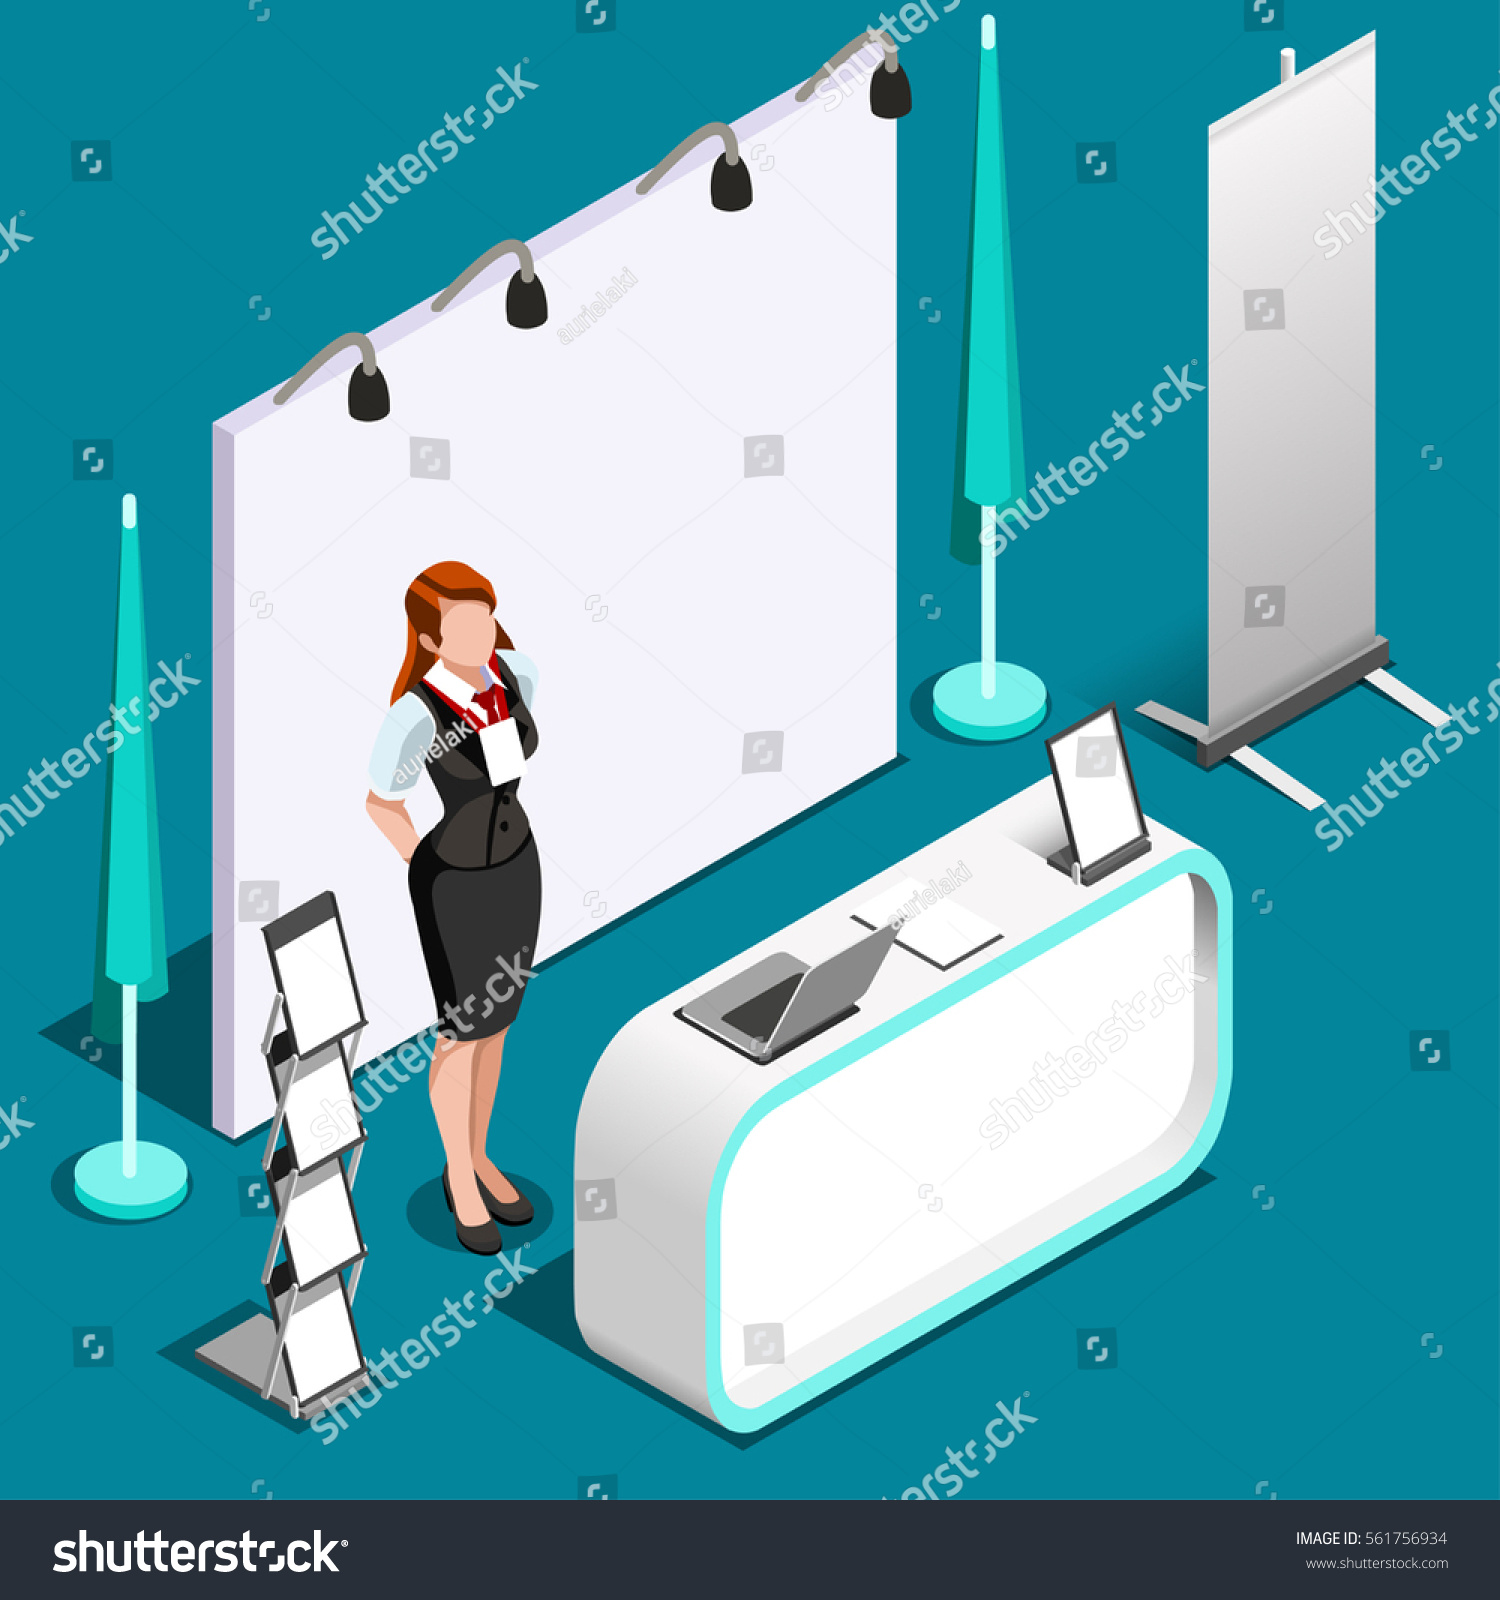 Exhibition Stall Design Vector Free Download : Isometric exhibition trade show booth stand stock vector